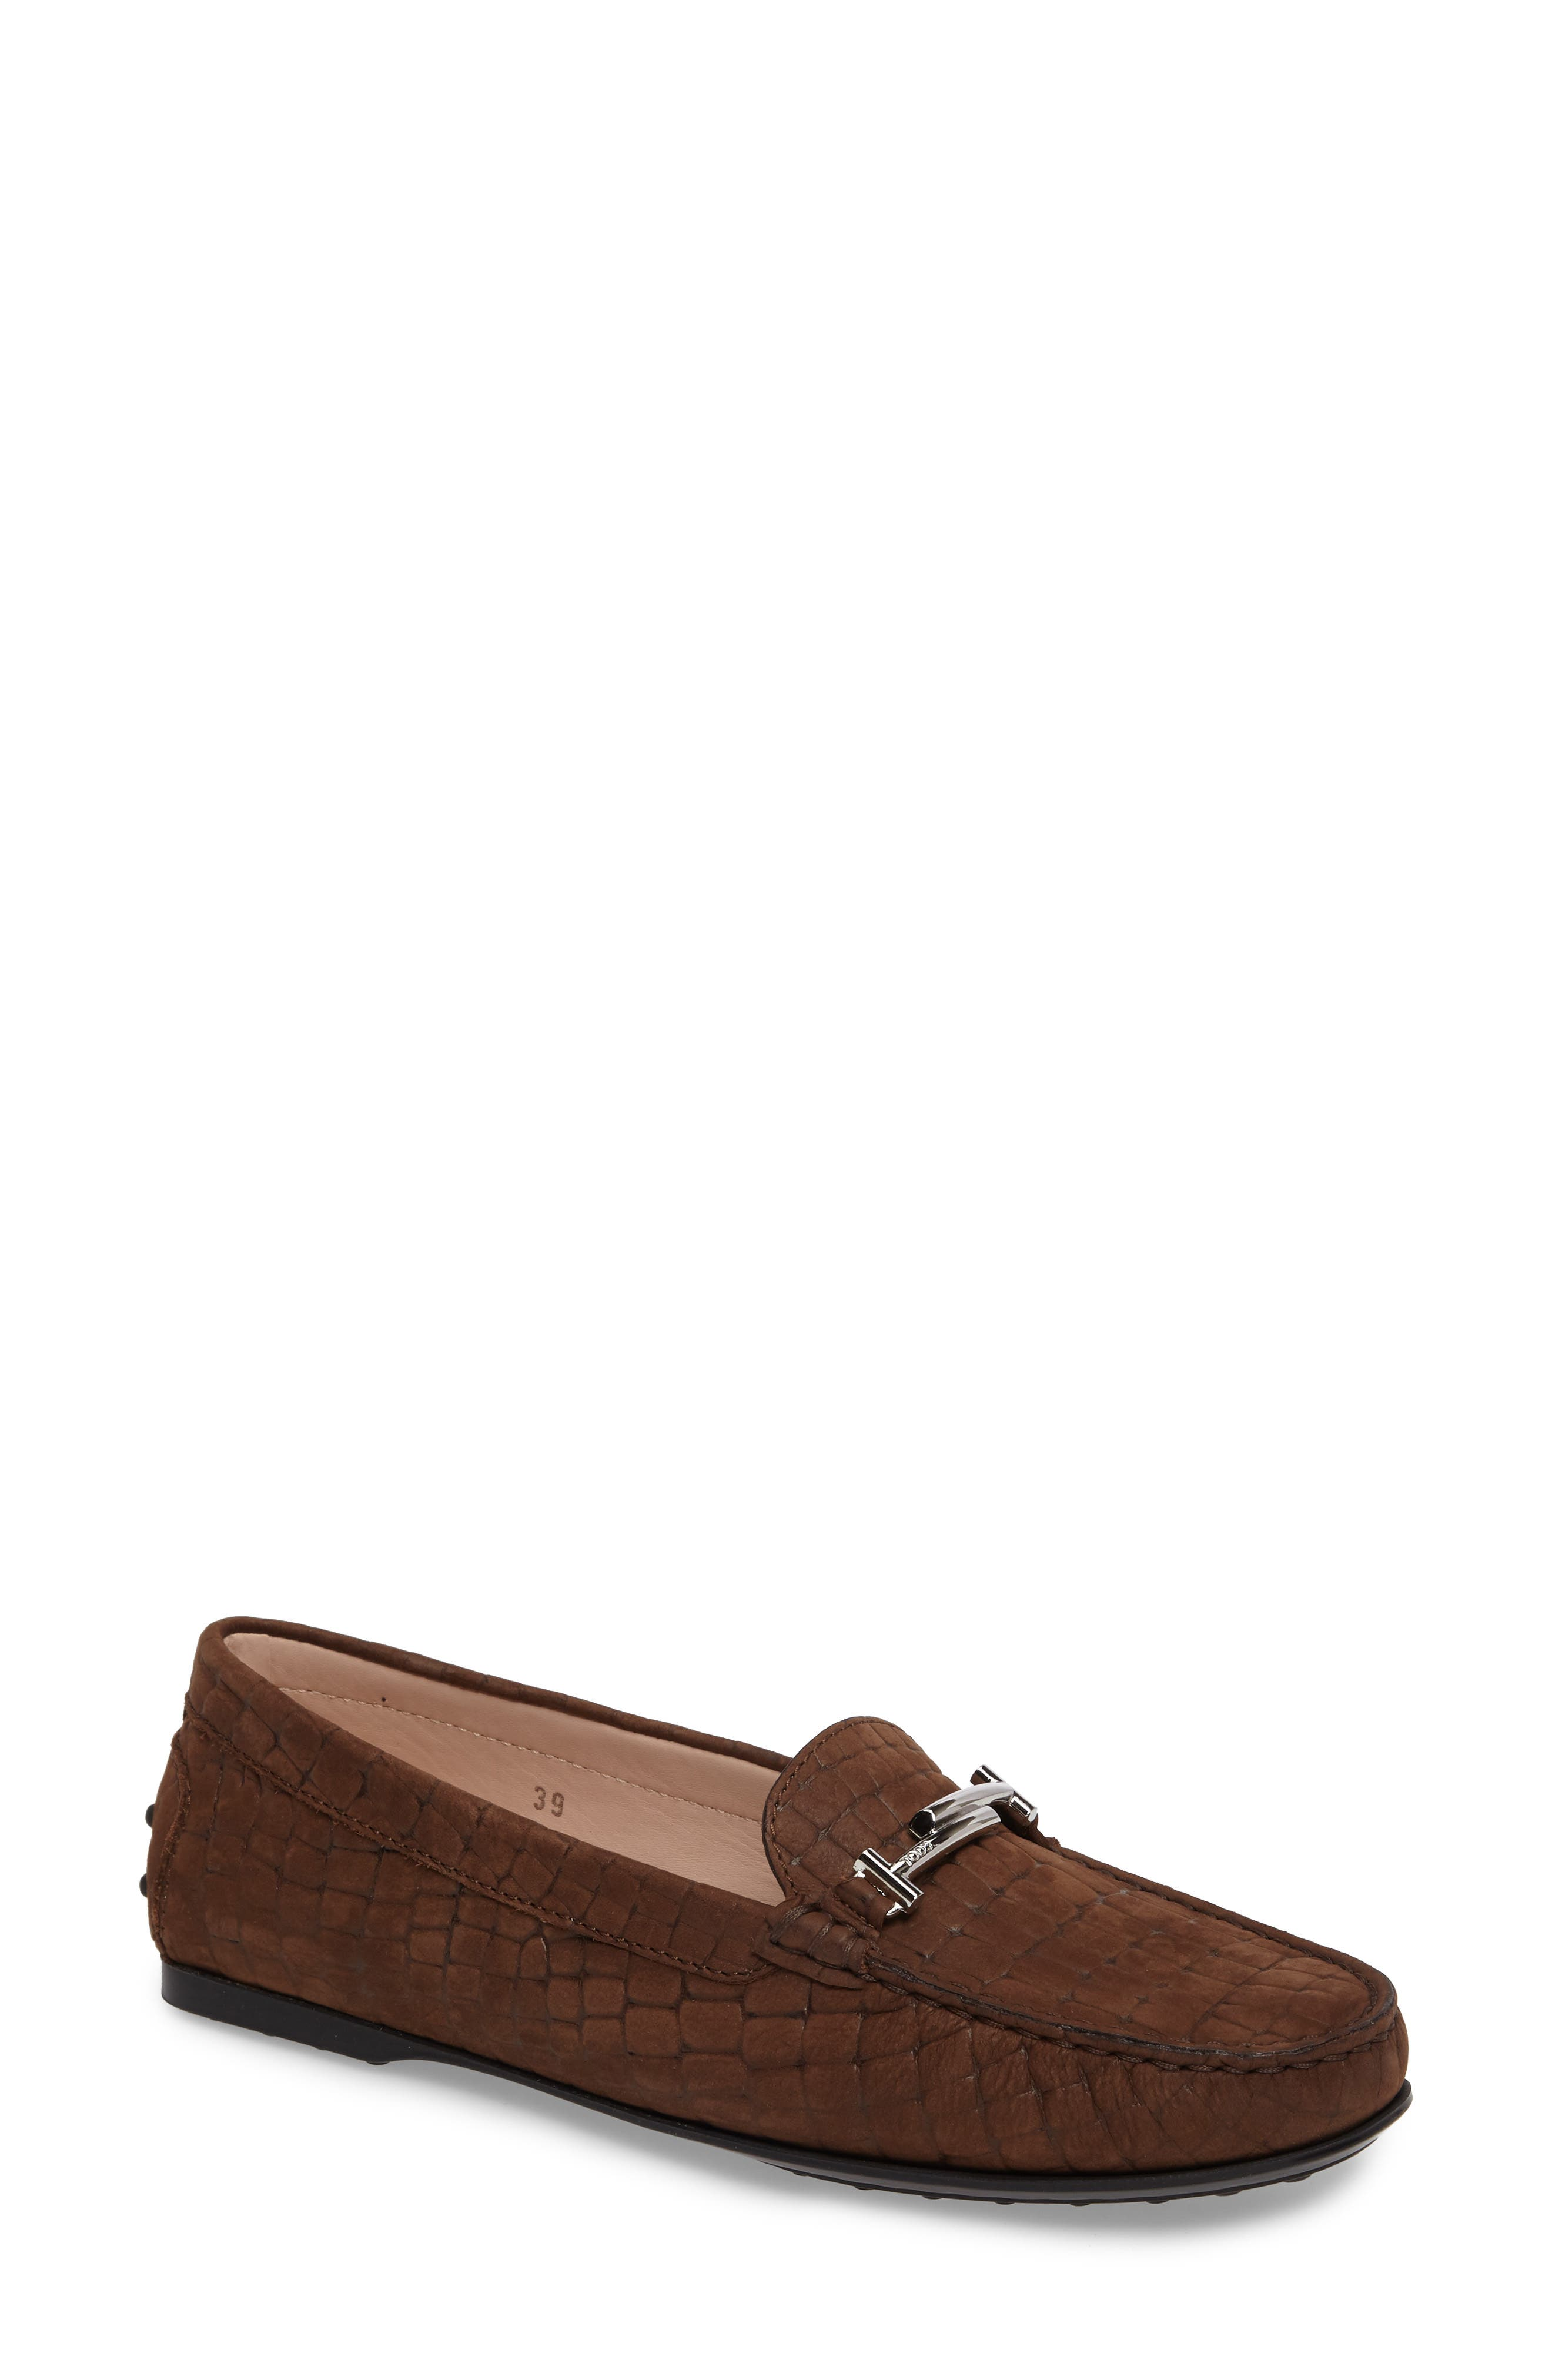 Tod's Croc Embossed Double T Loafer (Women)